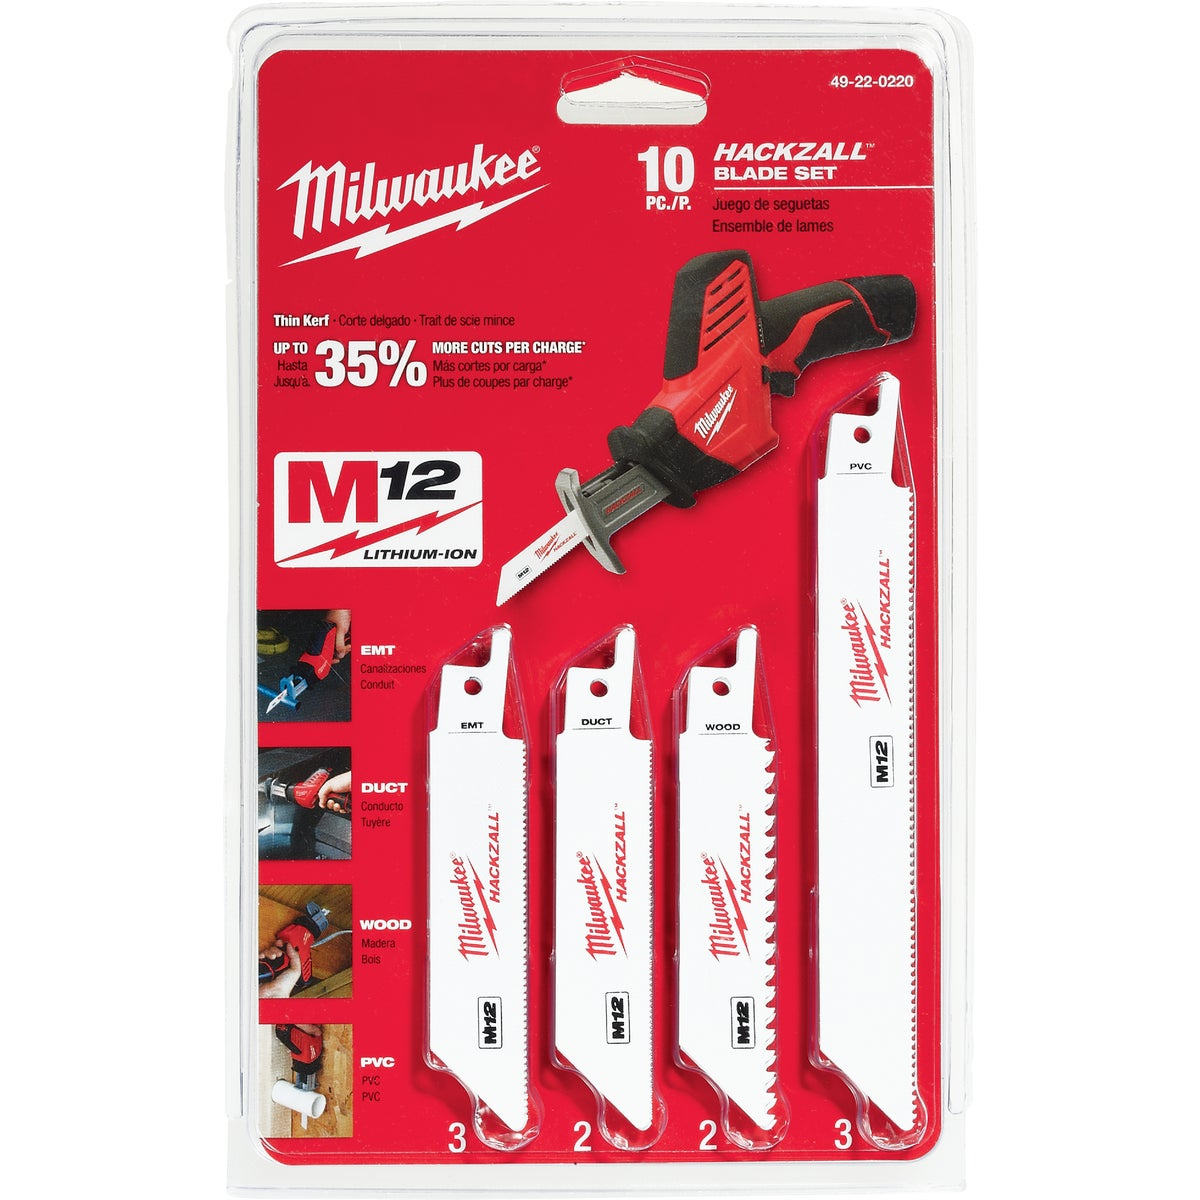 10PK HACKZALL BLADE SET - 49-22-0220 by Milwaukee Accessory